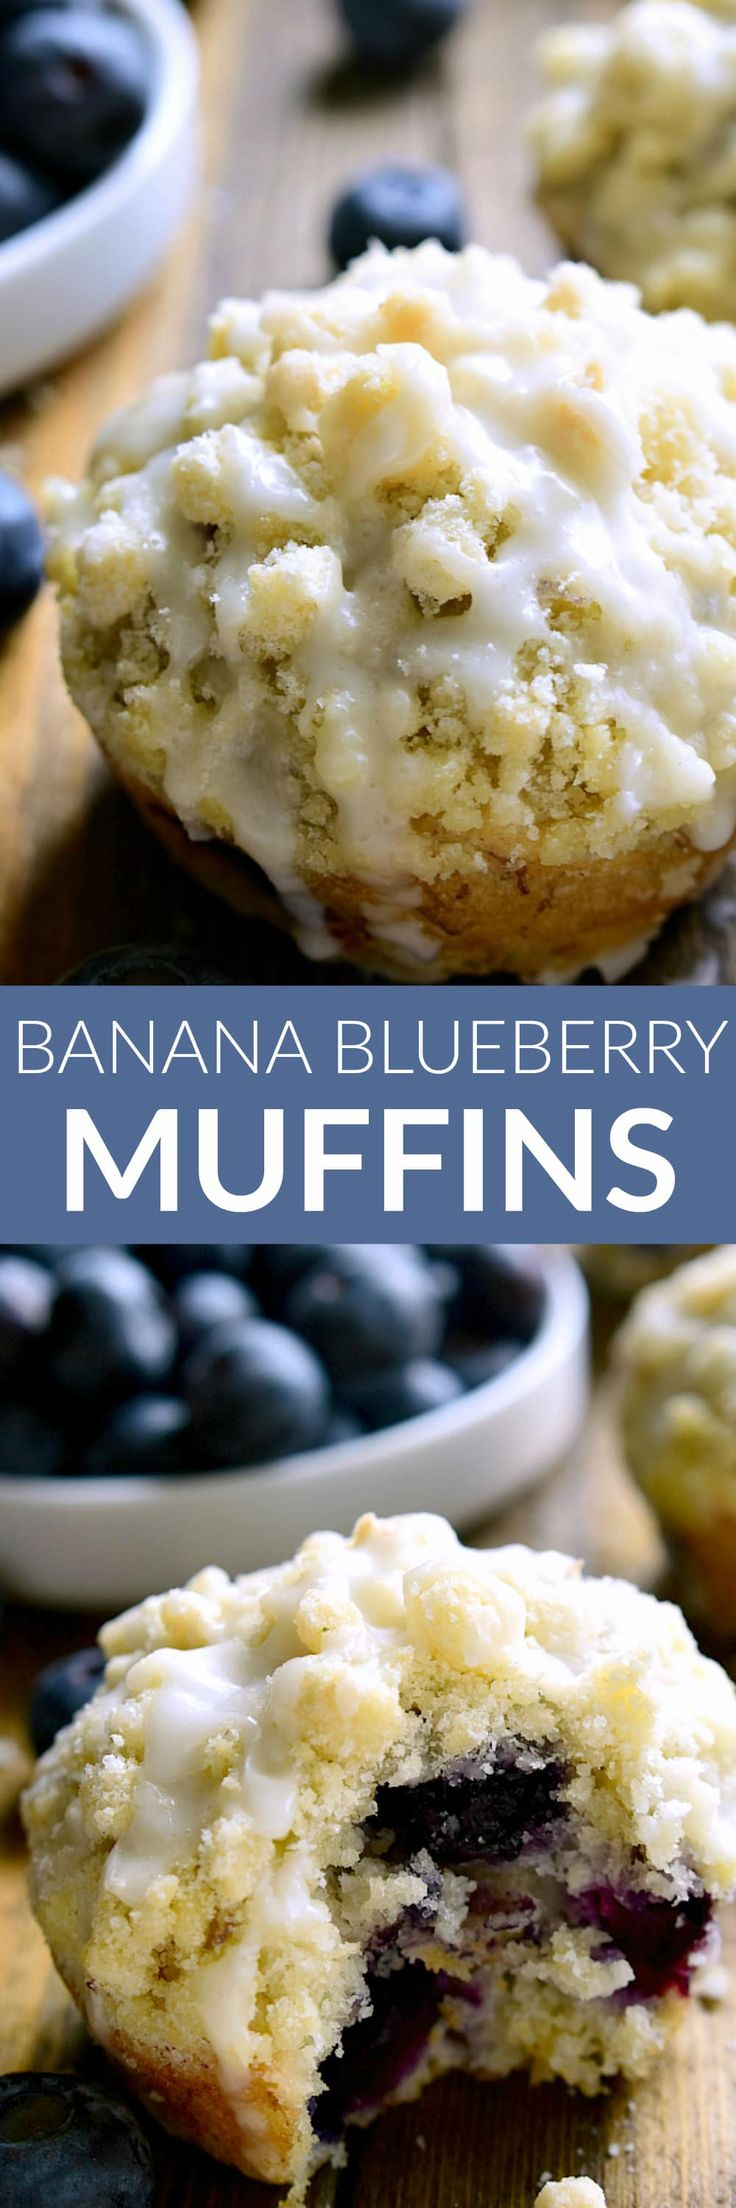 These Banana Blueberry Muffins combine two favorites in one delicious muffin that's perfect for breakfast, brunch, or anytime!